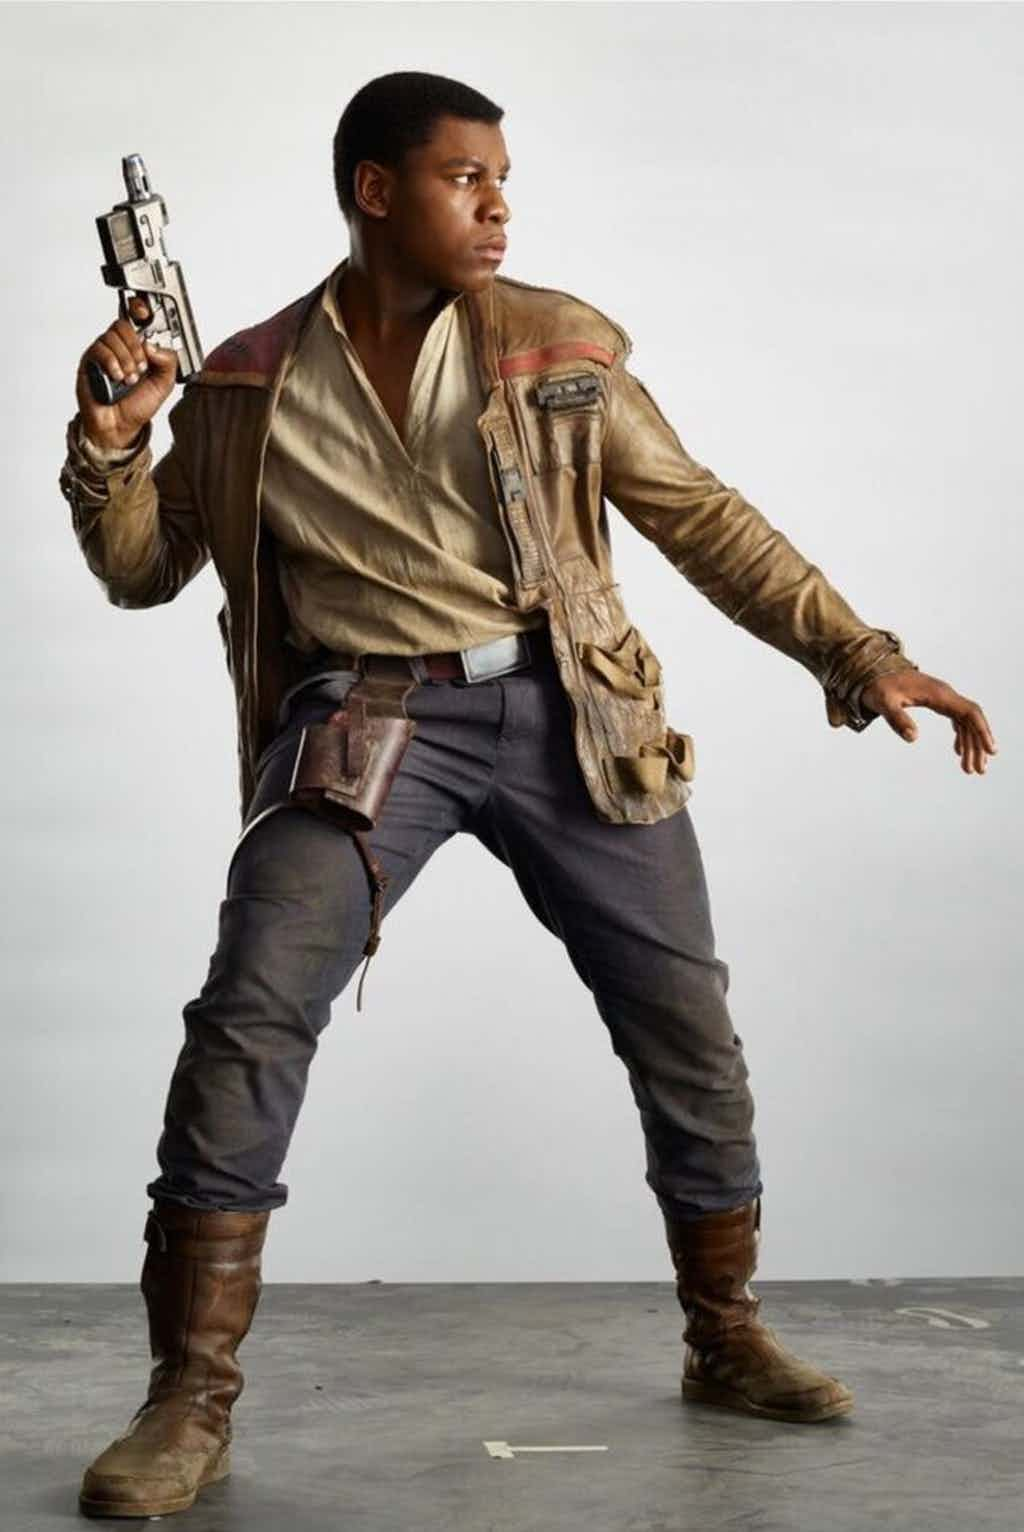 Star-Wars-The-Last-Jedi-John-Boyega-as-Finn-Holding-Blaster.jpg